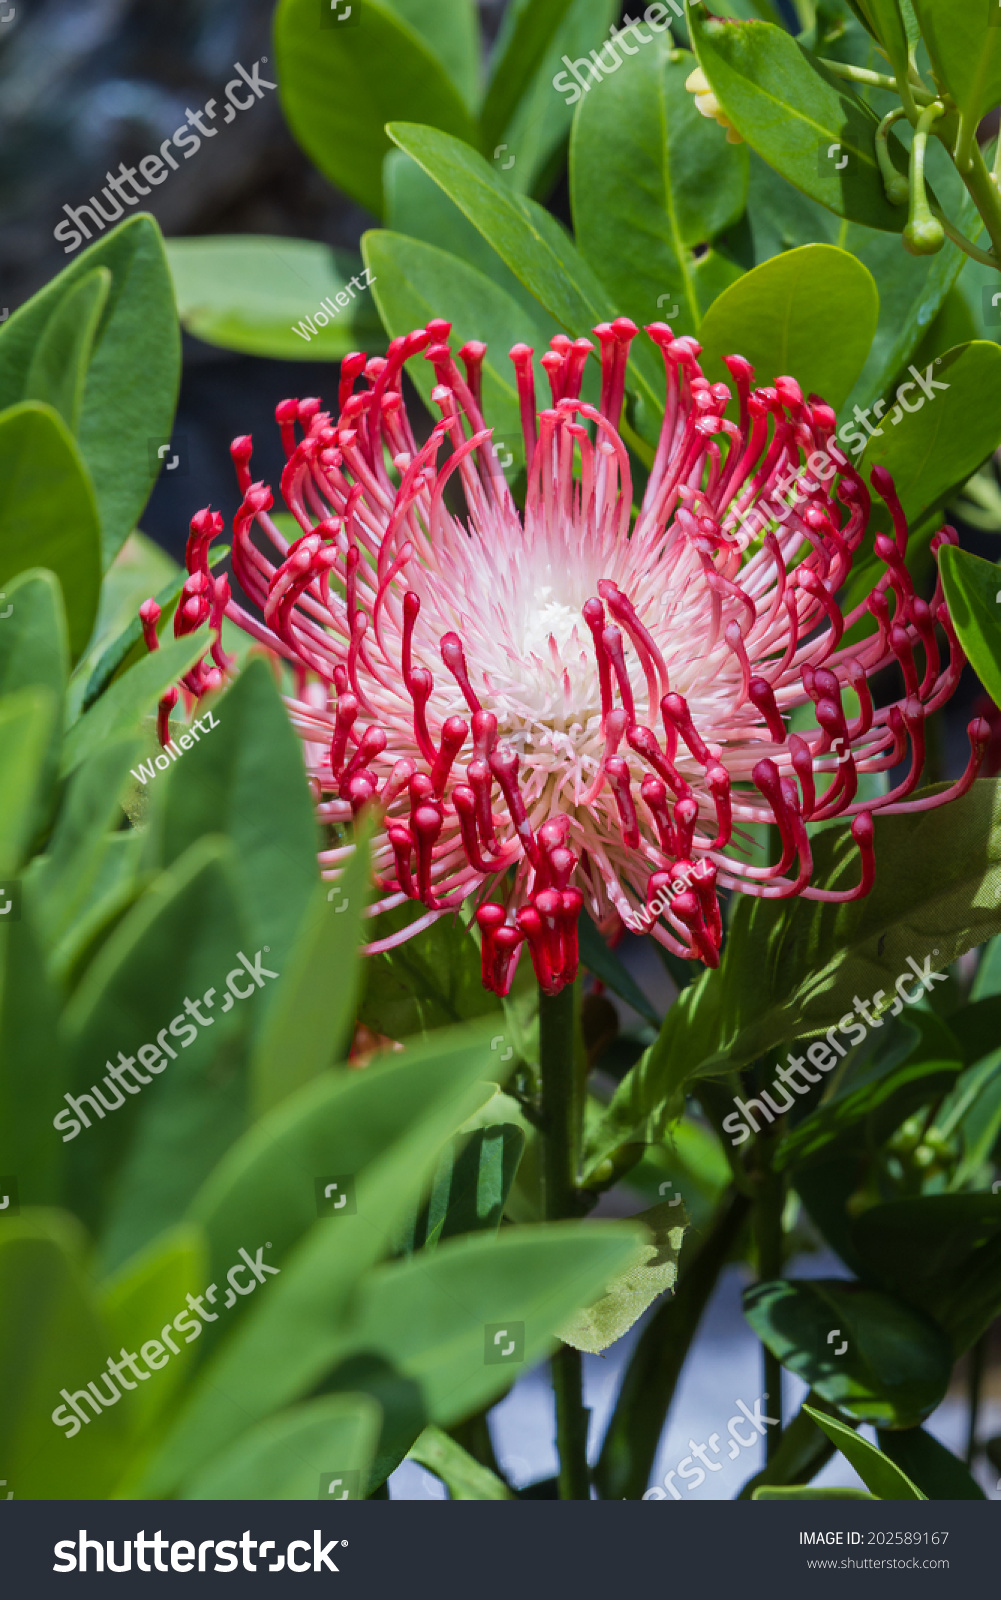 Closeup beautiful exotic flower tentacle looking stock photo closeup of a beautiful exotic flower with tentacle looking petals and green leaves izmirmasajfo Images